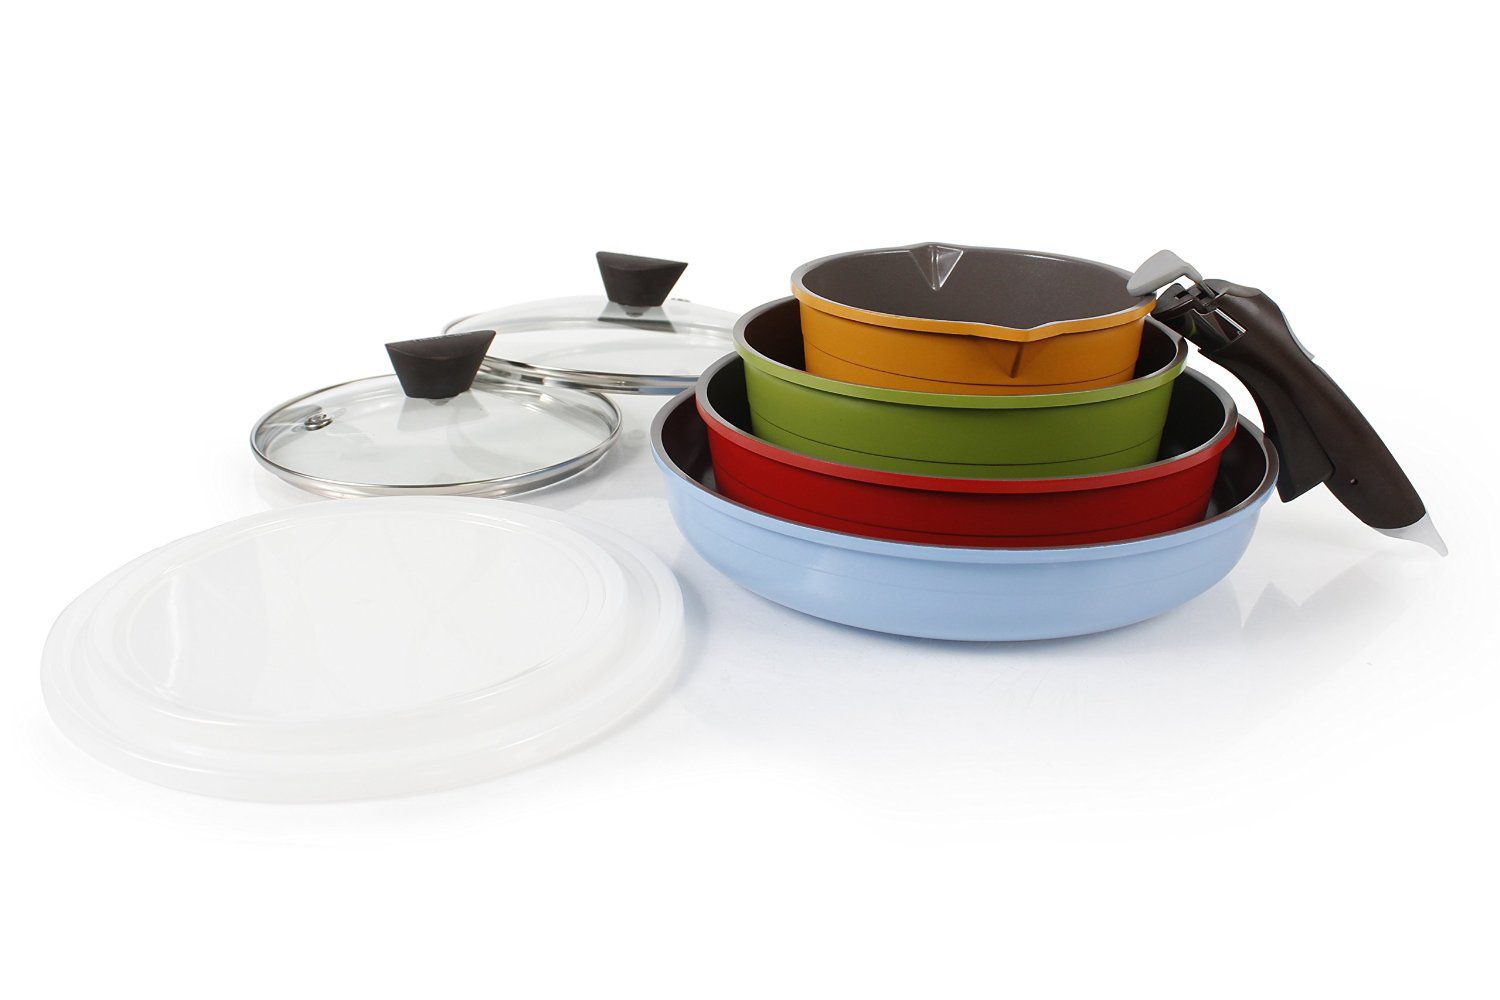 Neoflam Midas 9-piece Ceramic Nonstick Cookware Set with Detachable Handle, Multicolored, Space-Saving